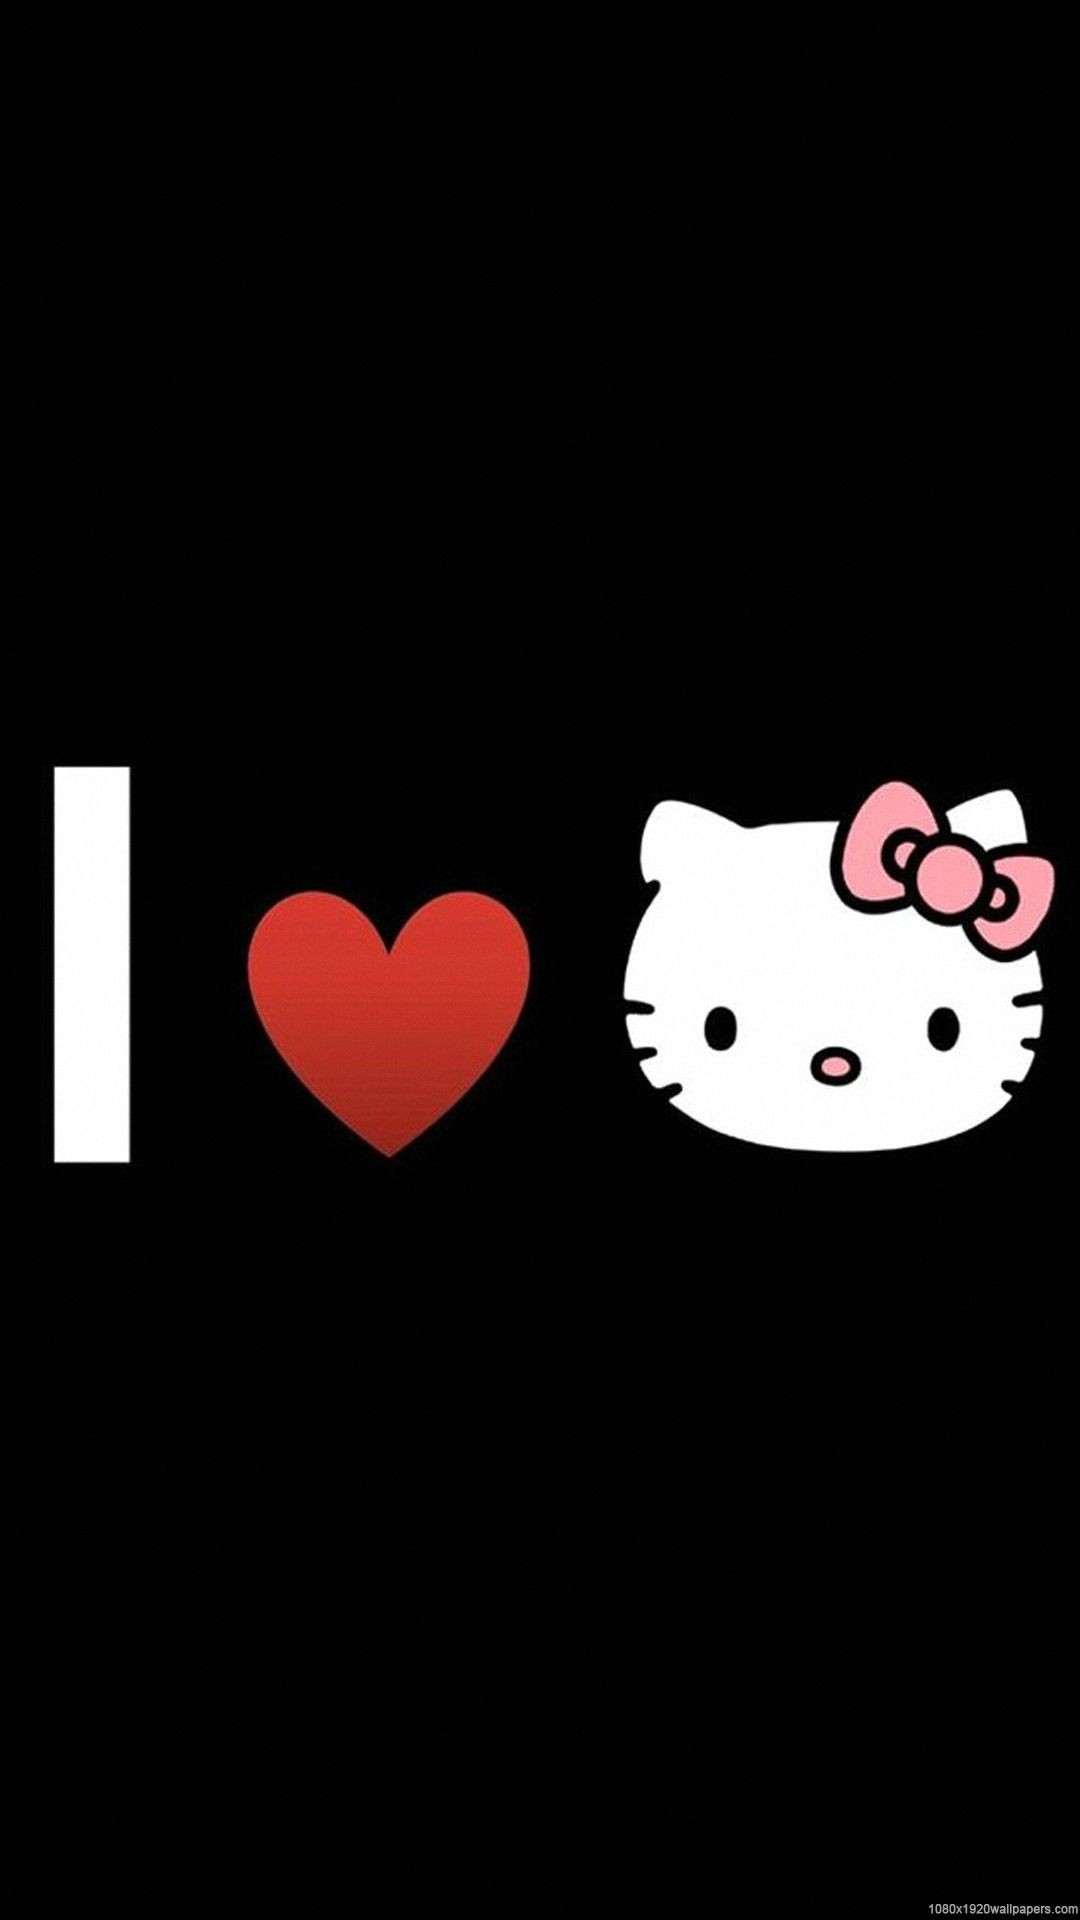 Good Wallpaper Hello Kitty Android - 807112-hello-kitty-red-wallpaper-1080x1920-high-resolution  Graphic_218170.jpg